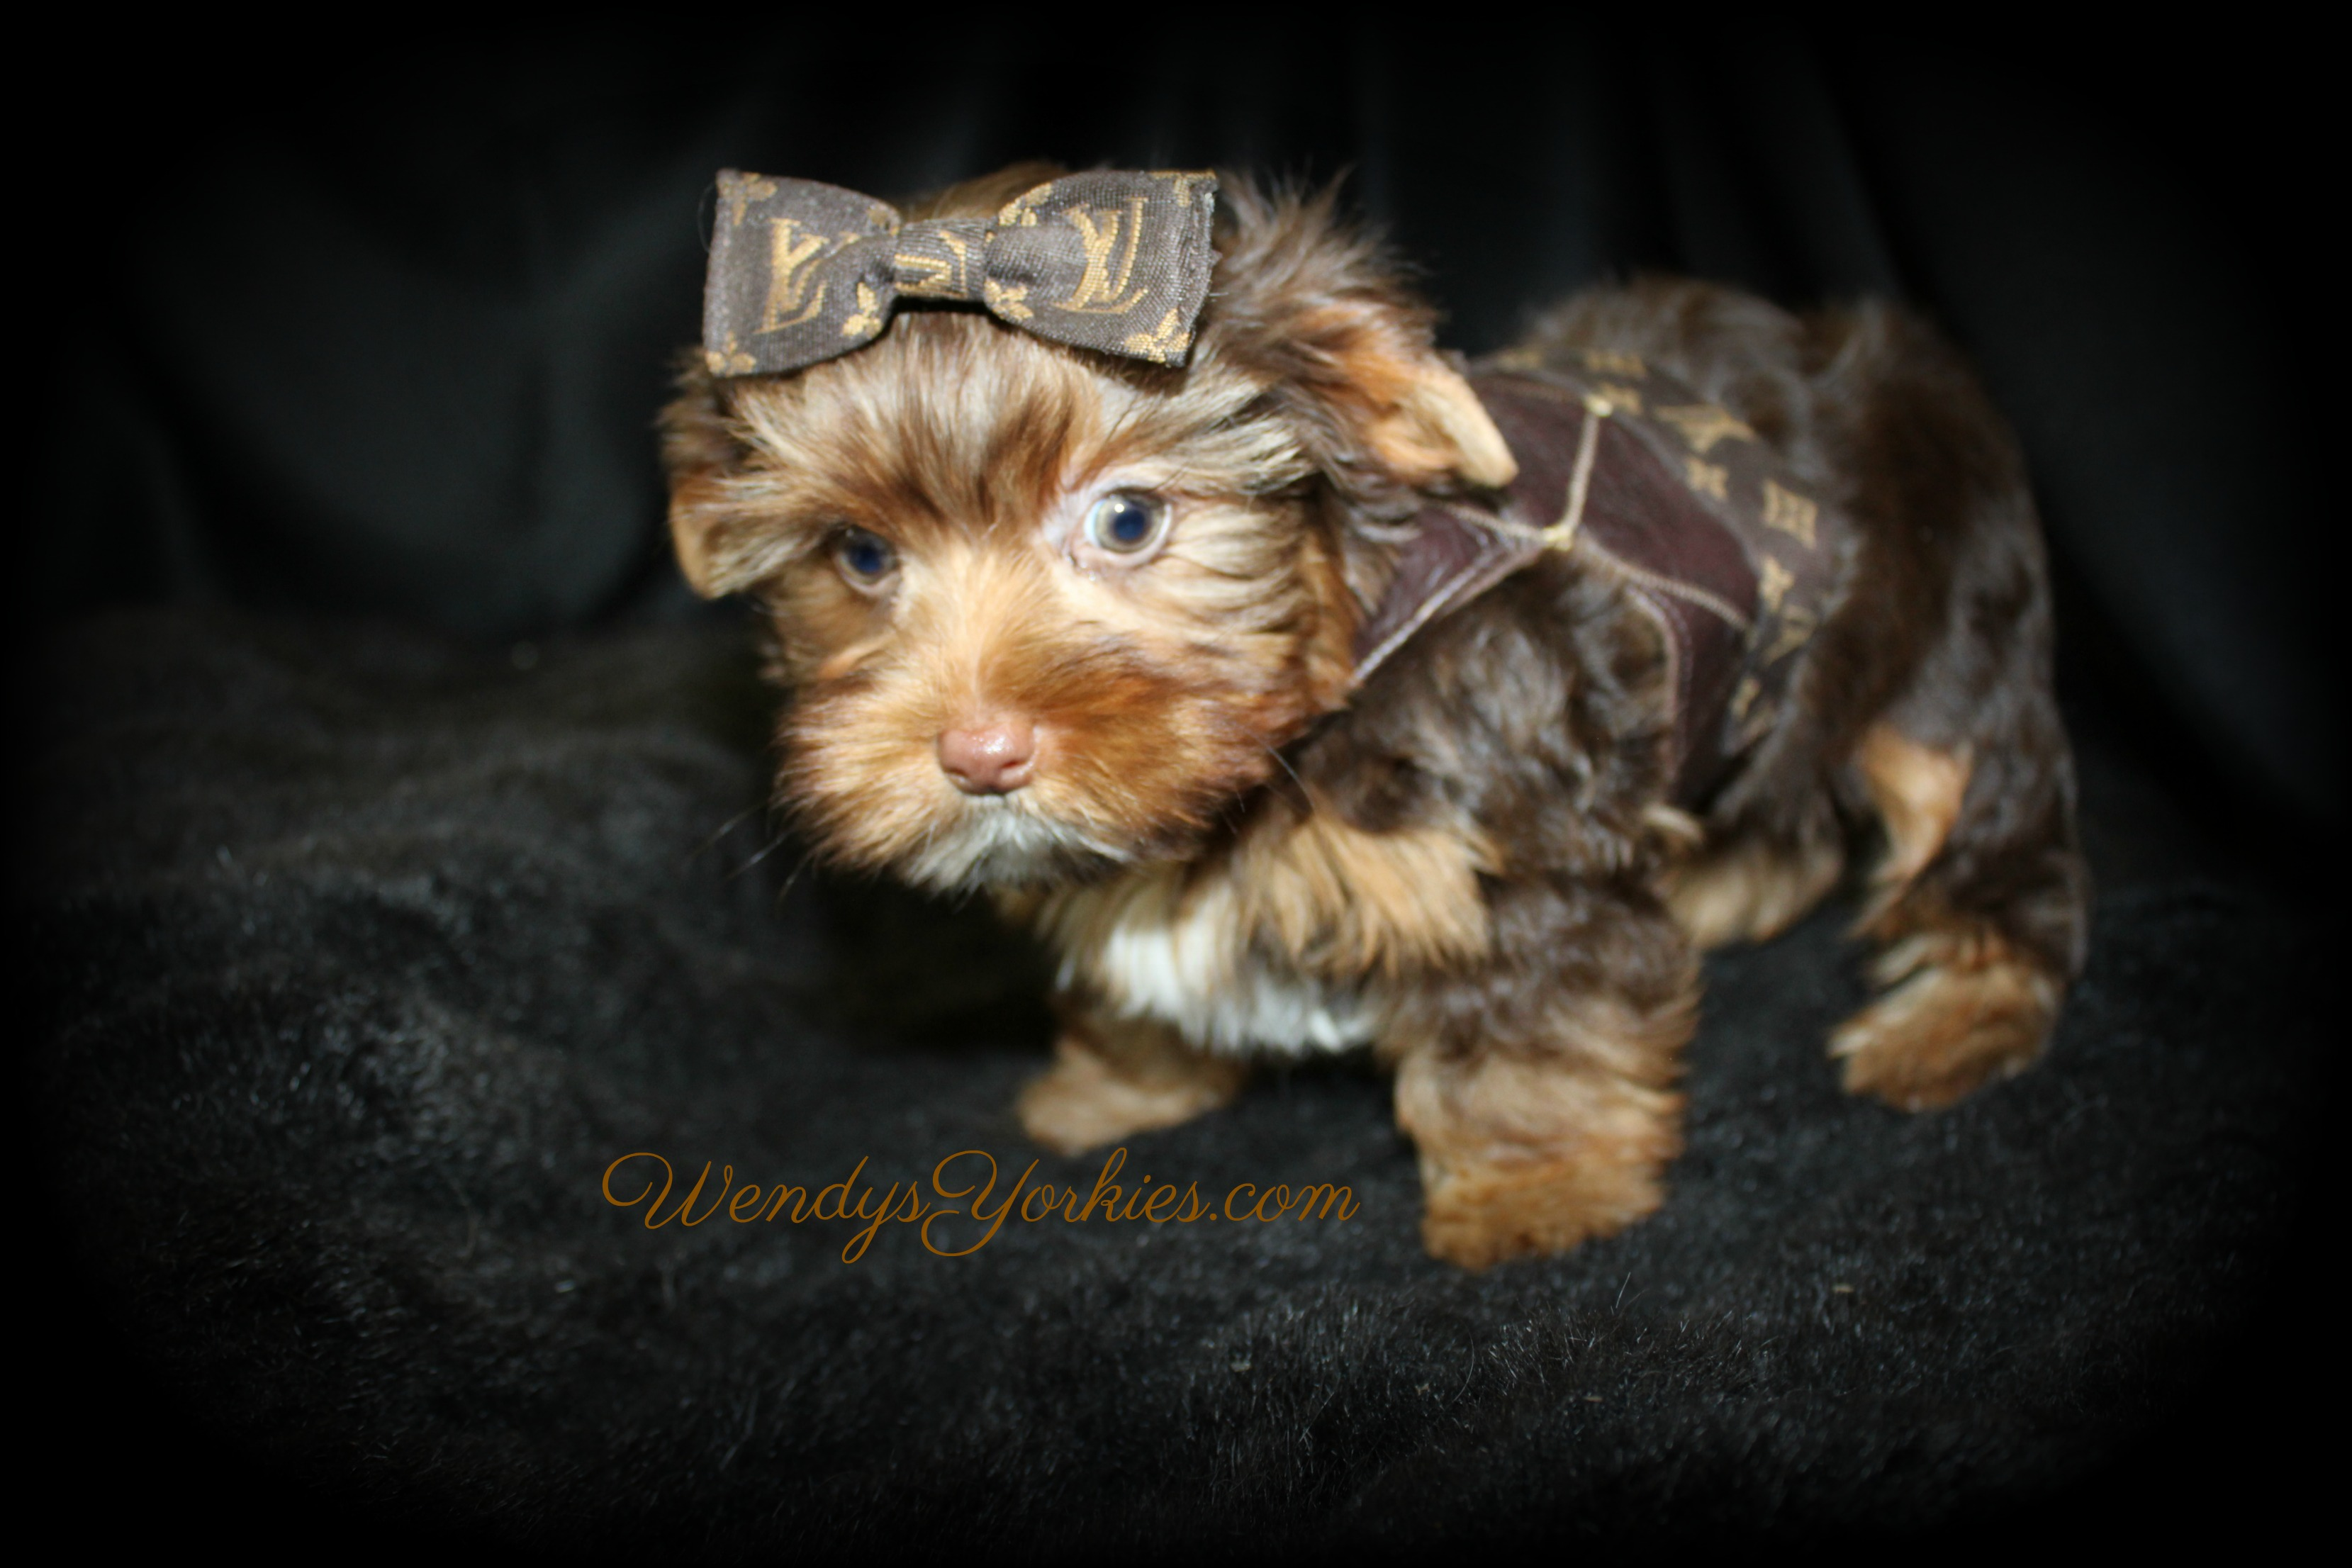 Male Chocolate YOrkie puppy for sale, Dixie cm1, WendysYorkies.com